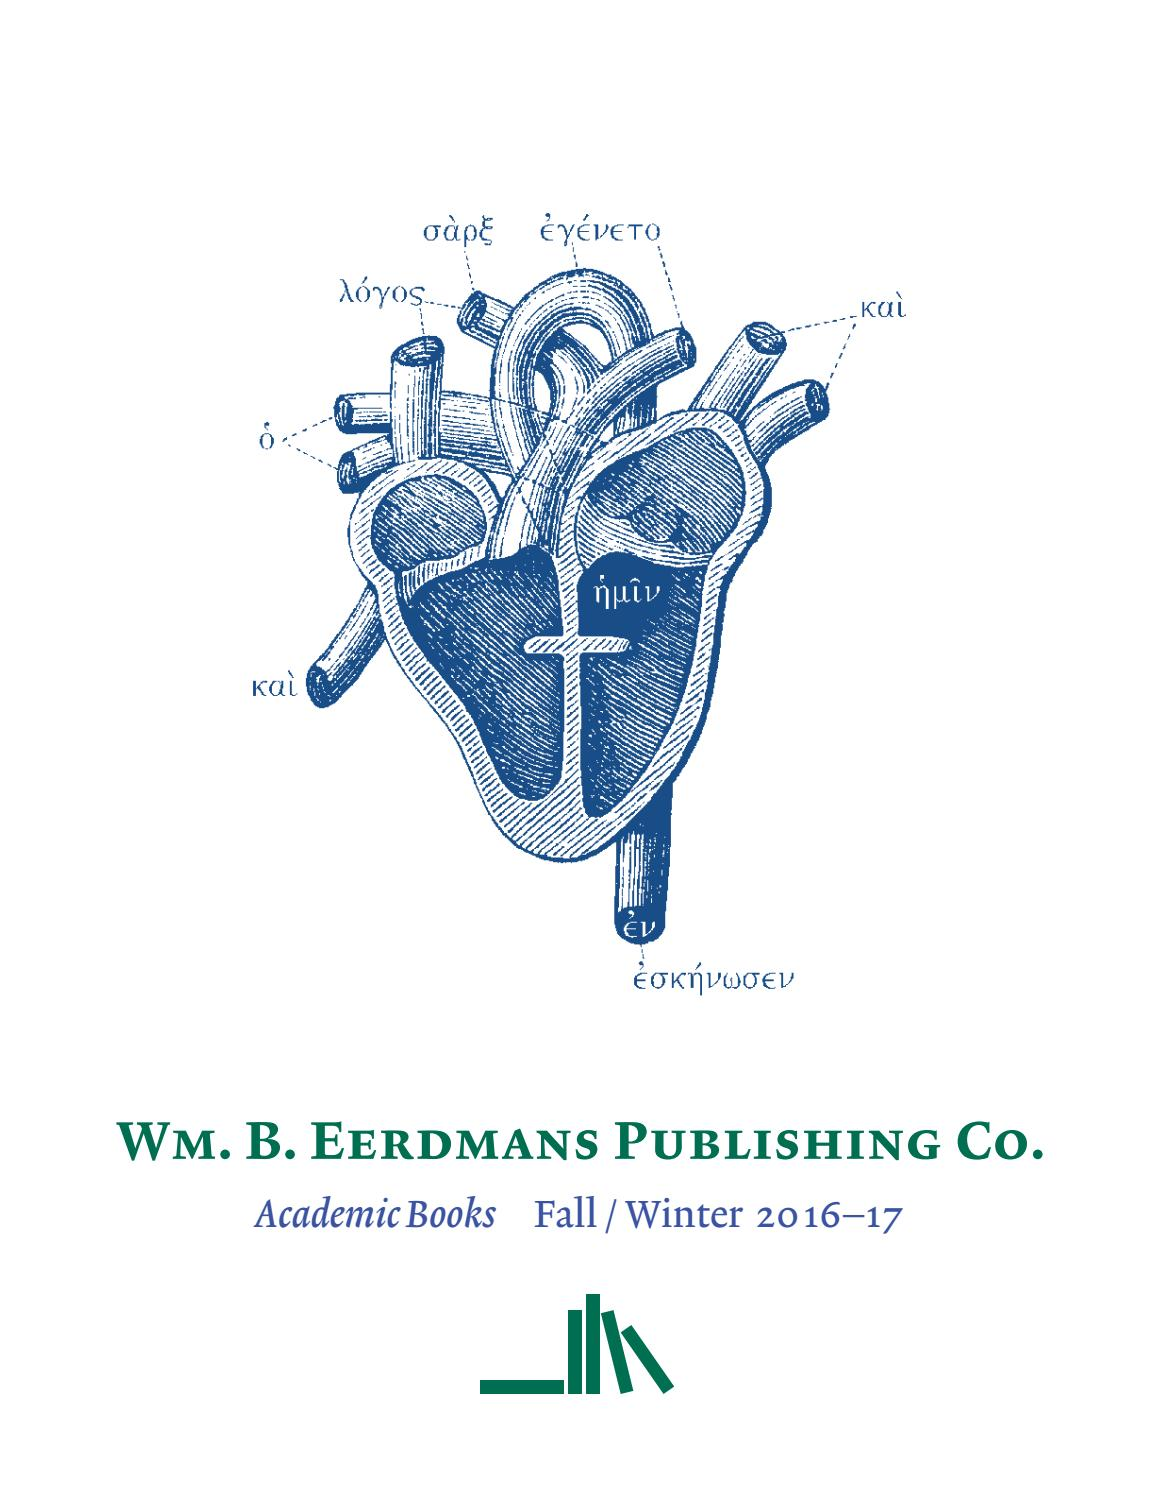 Academic Catalog — Fall/Winter 2016-2017 by Wm. B. Eerdmans ...